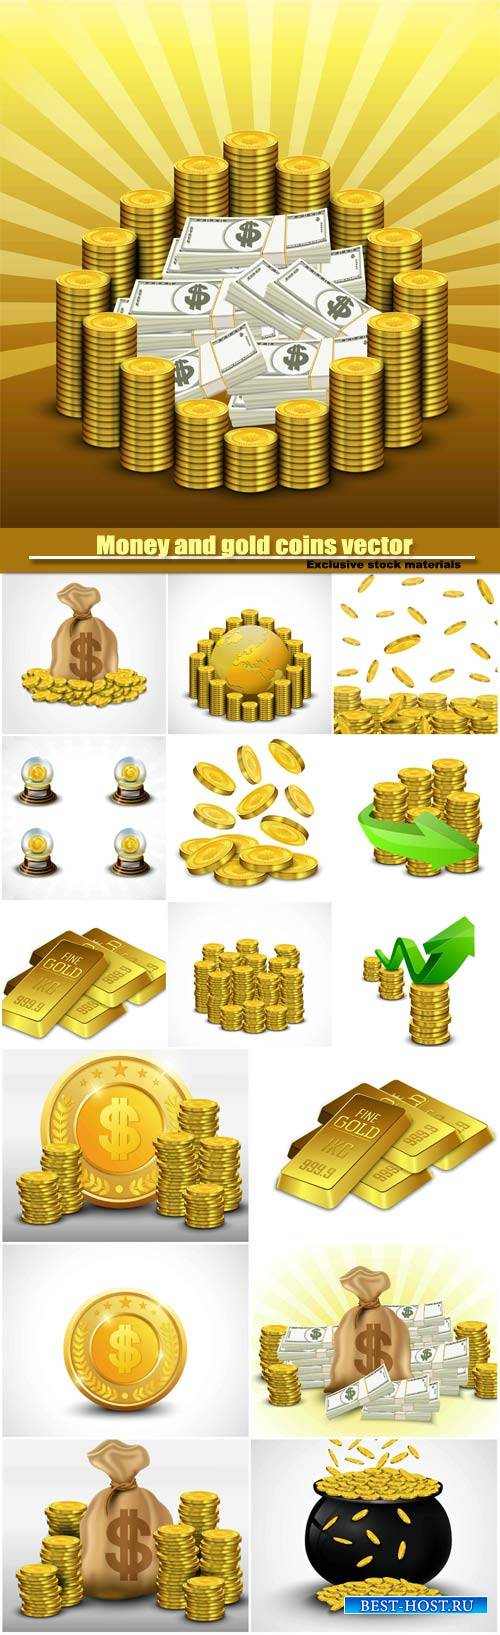 Money and gold coins vector